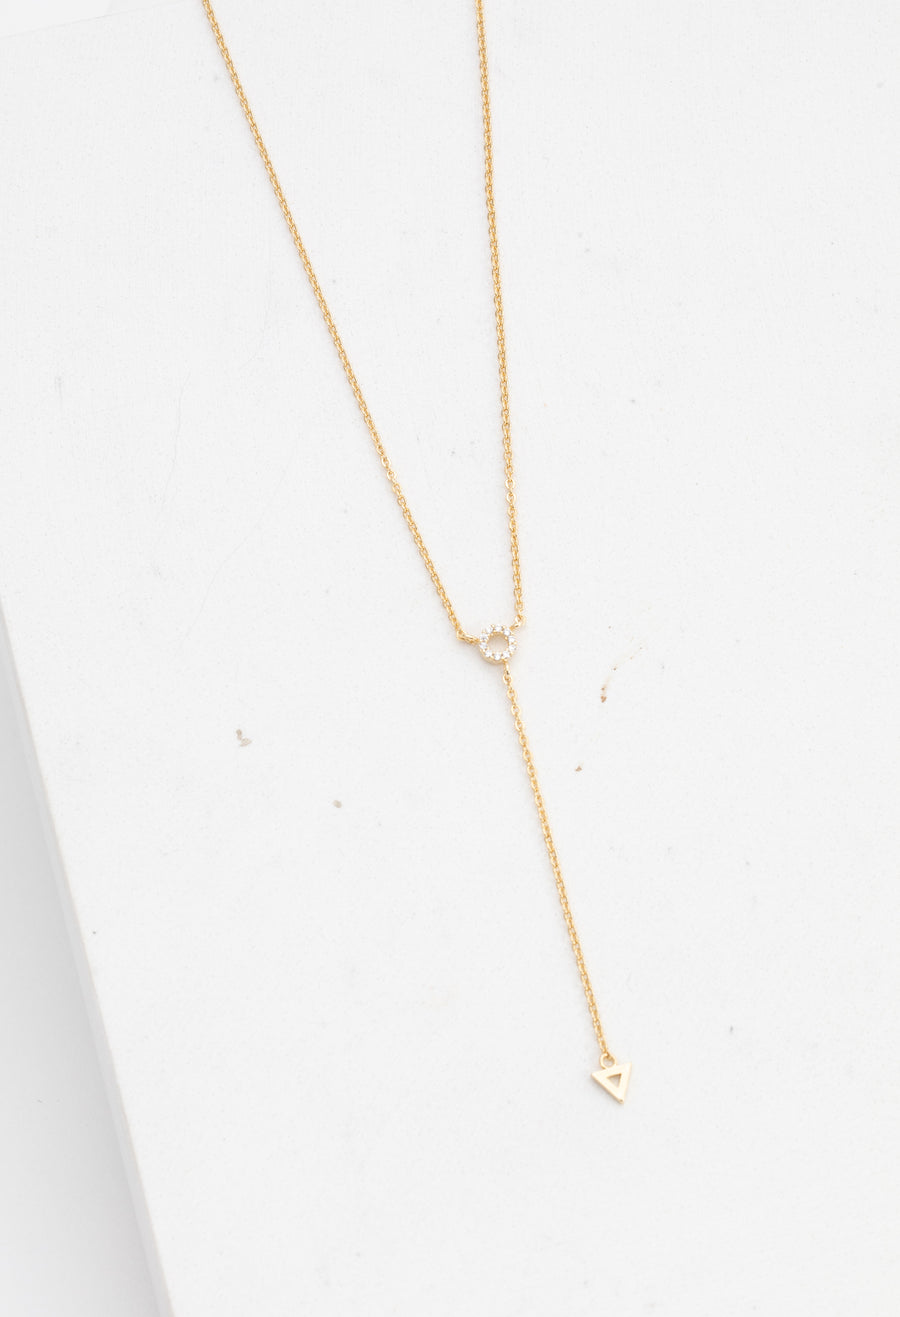 Comme Ci Comme Ca Lariat Necklace